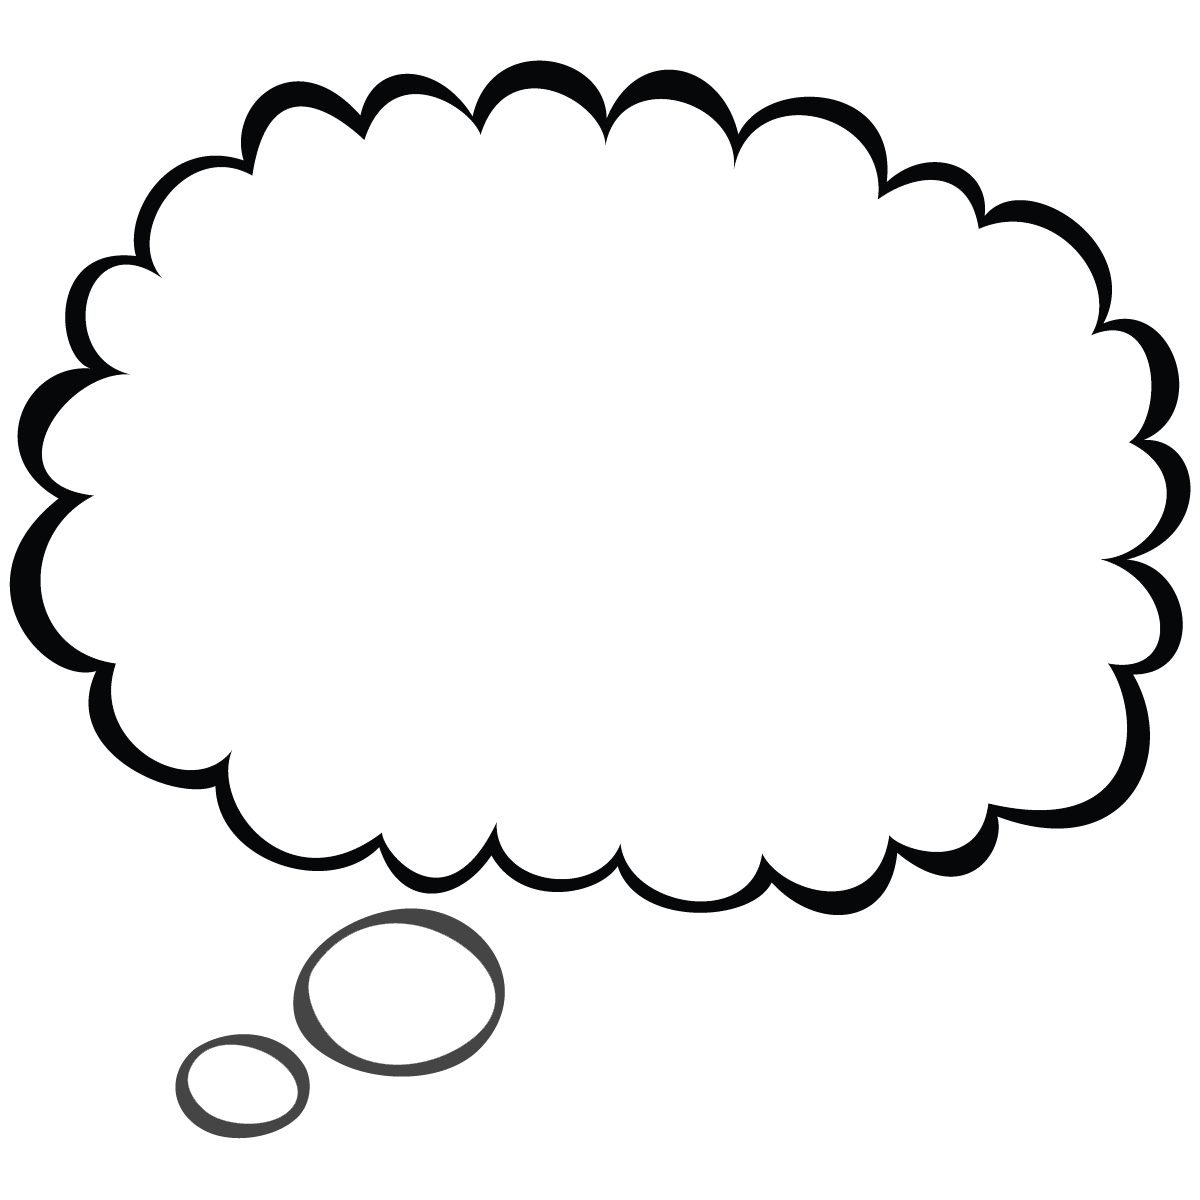 Printable Thought Bubbles Clipart